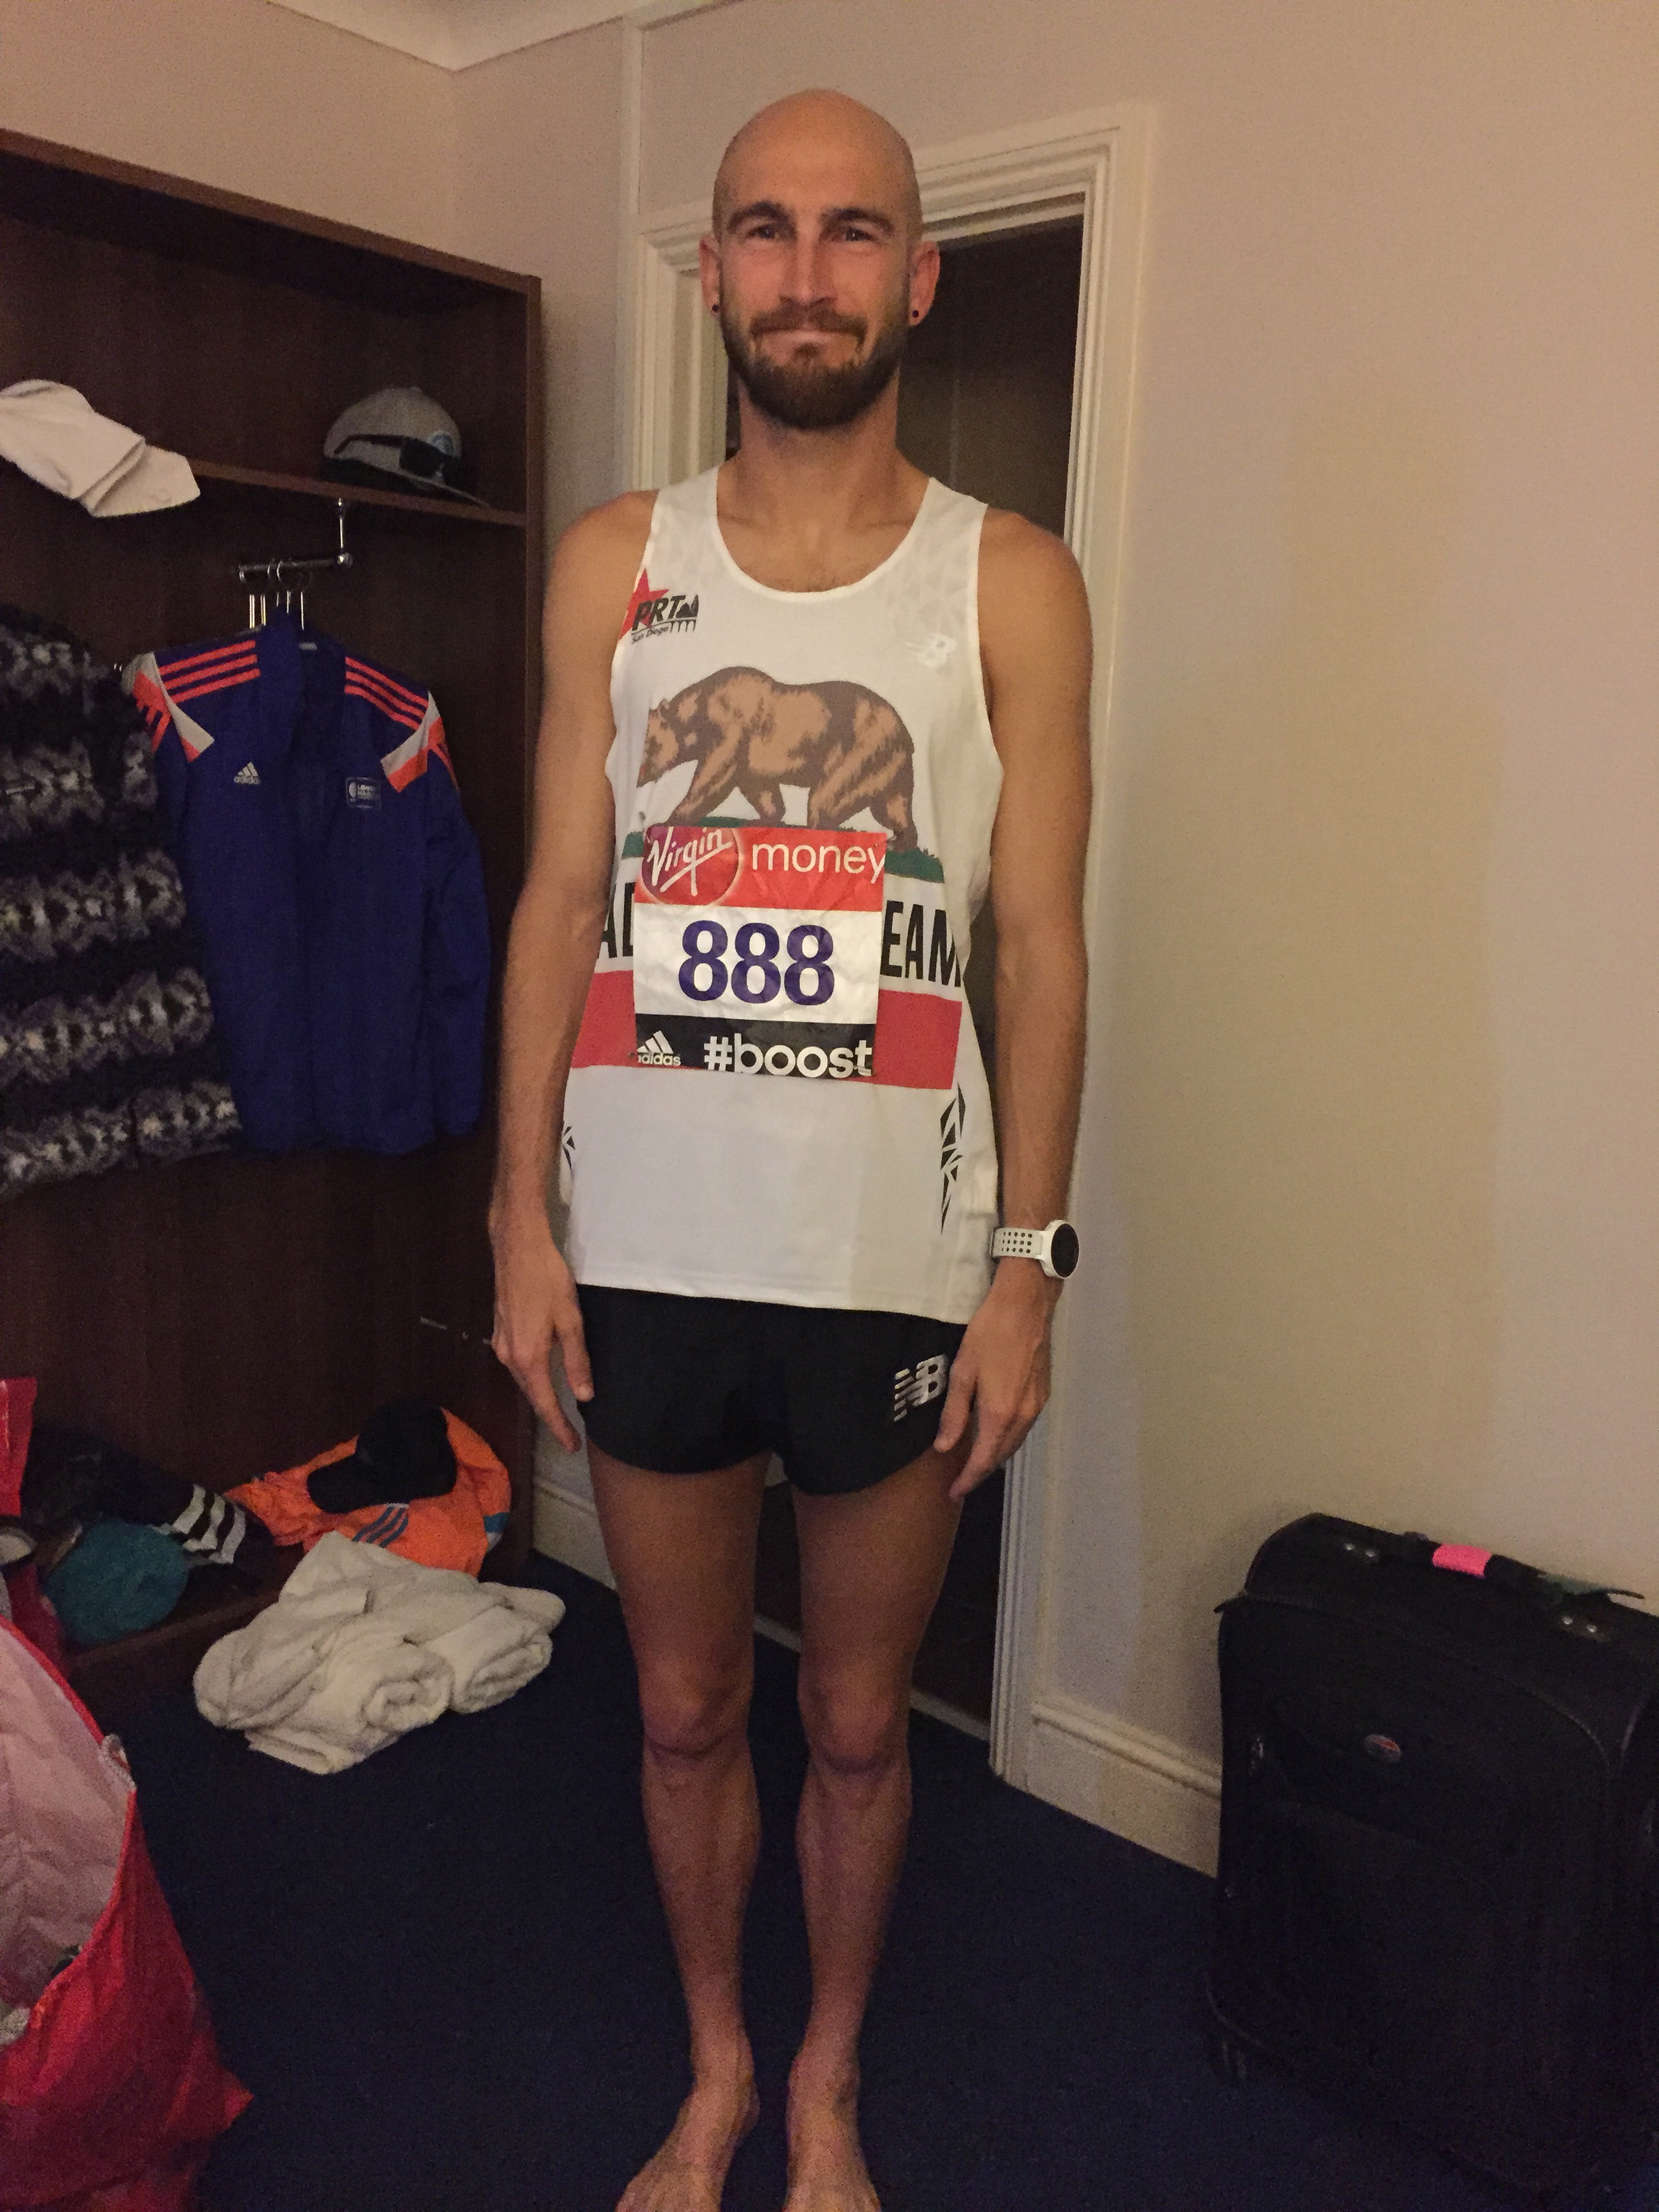 Doesn't he look ready to do a crazy fast marathon?!